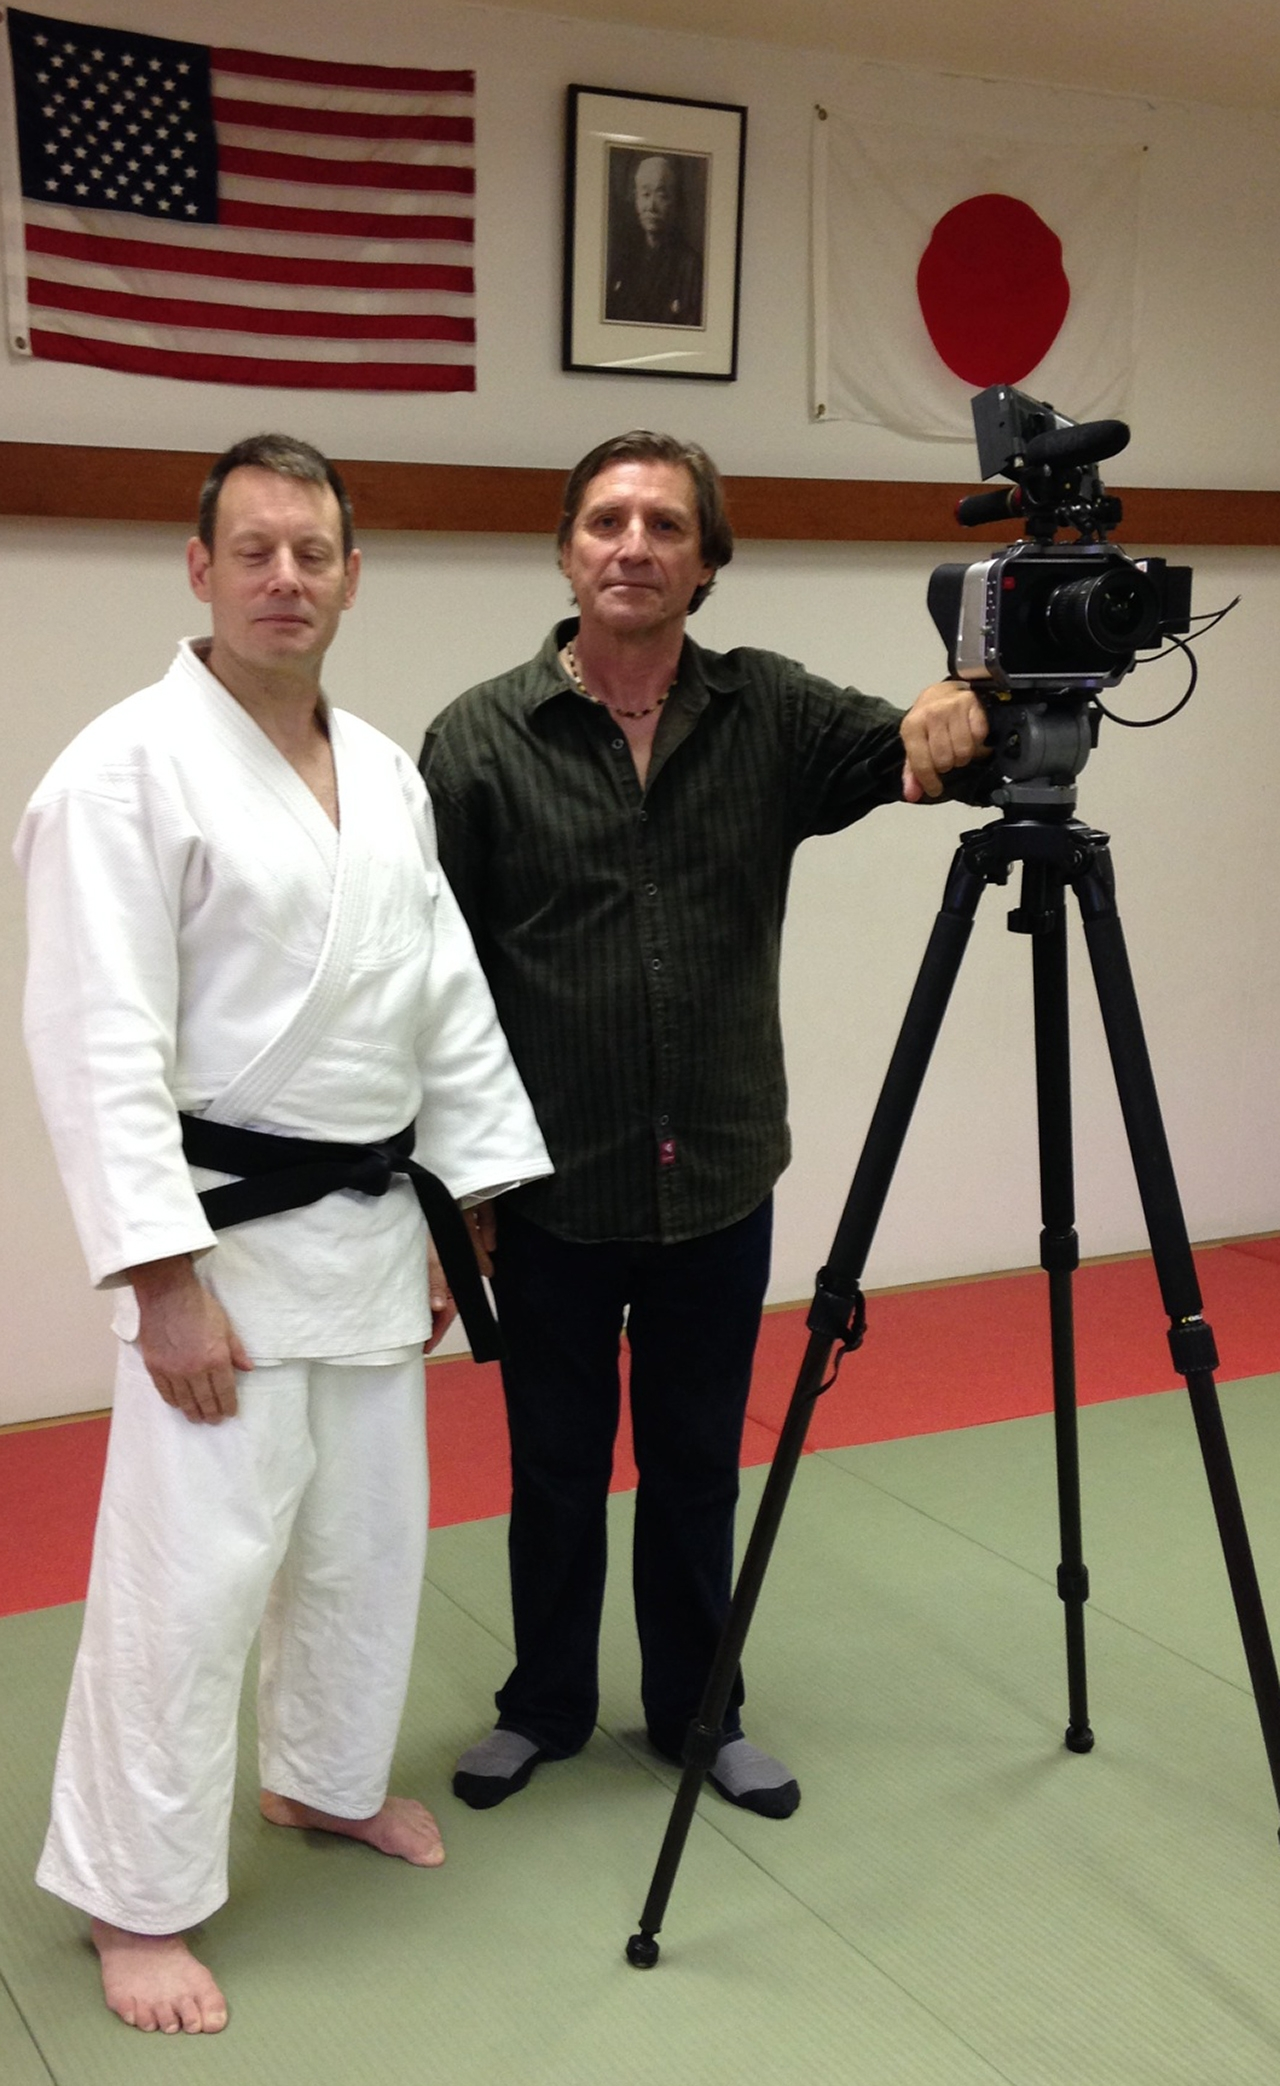 John Gage, 8th dan Judo and Nihon-Jujutsu